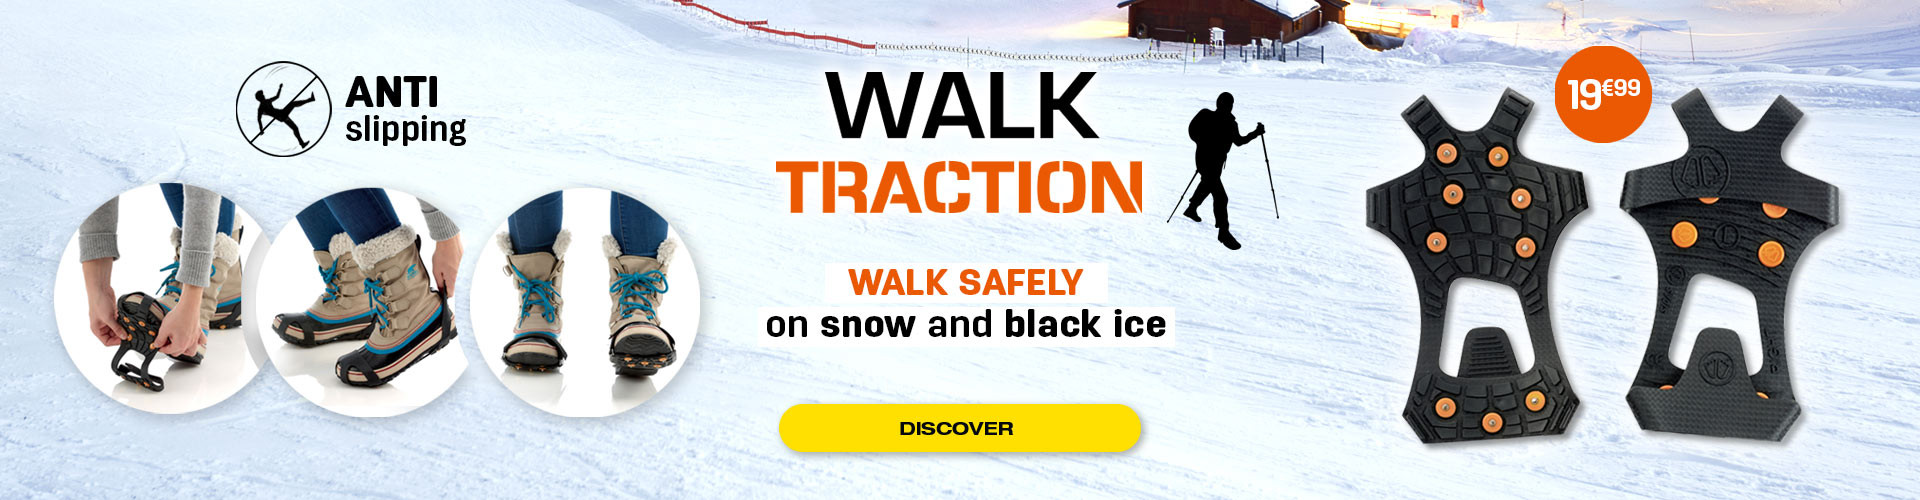 Walk safely on snow and black ice thanks to Walk Tractions